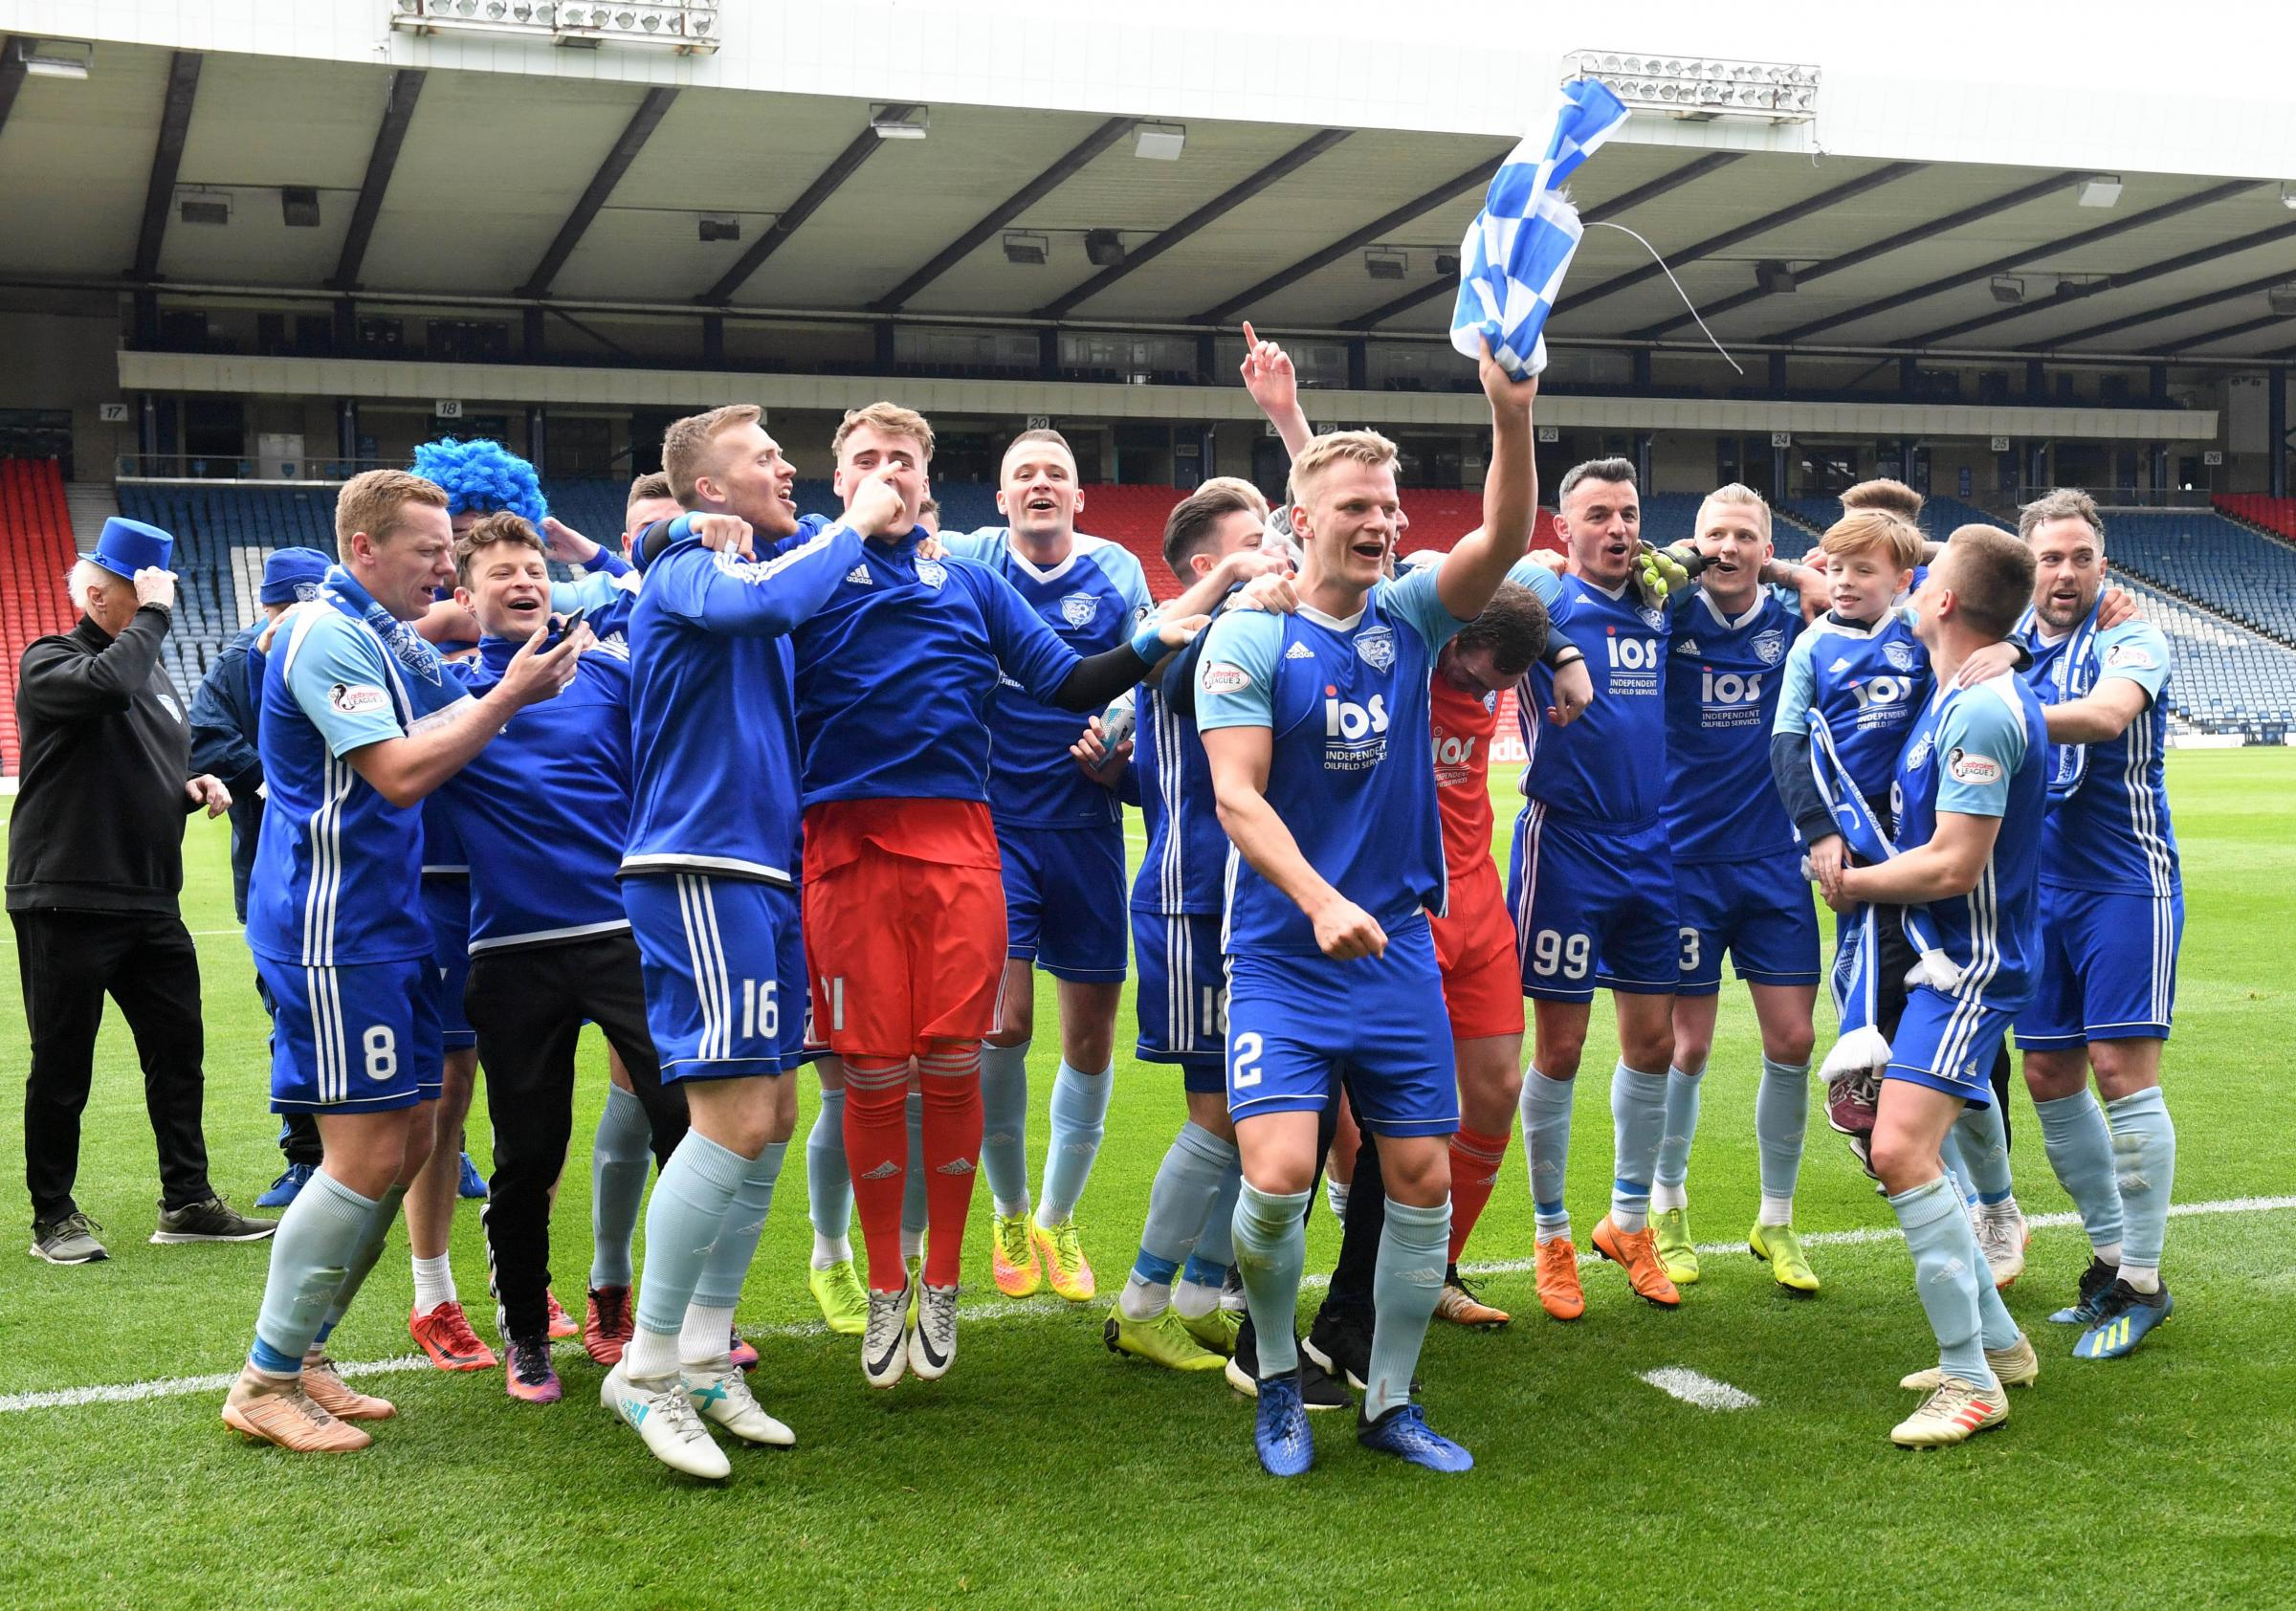 The Peterhead players celebrate their 2-0 victory over Queen's Park at Hampden